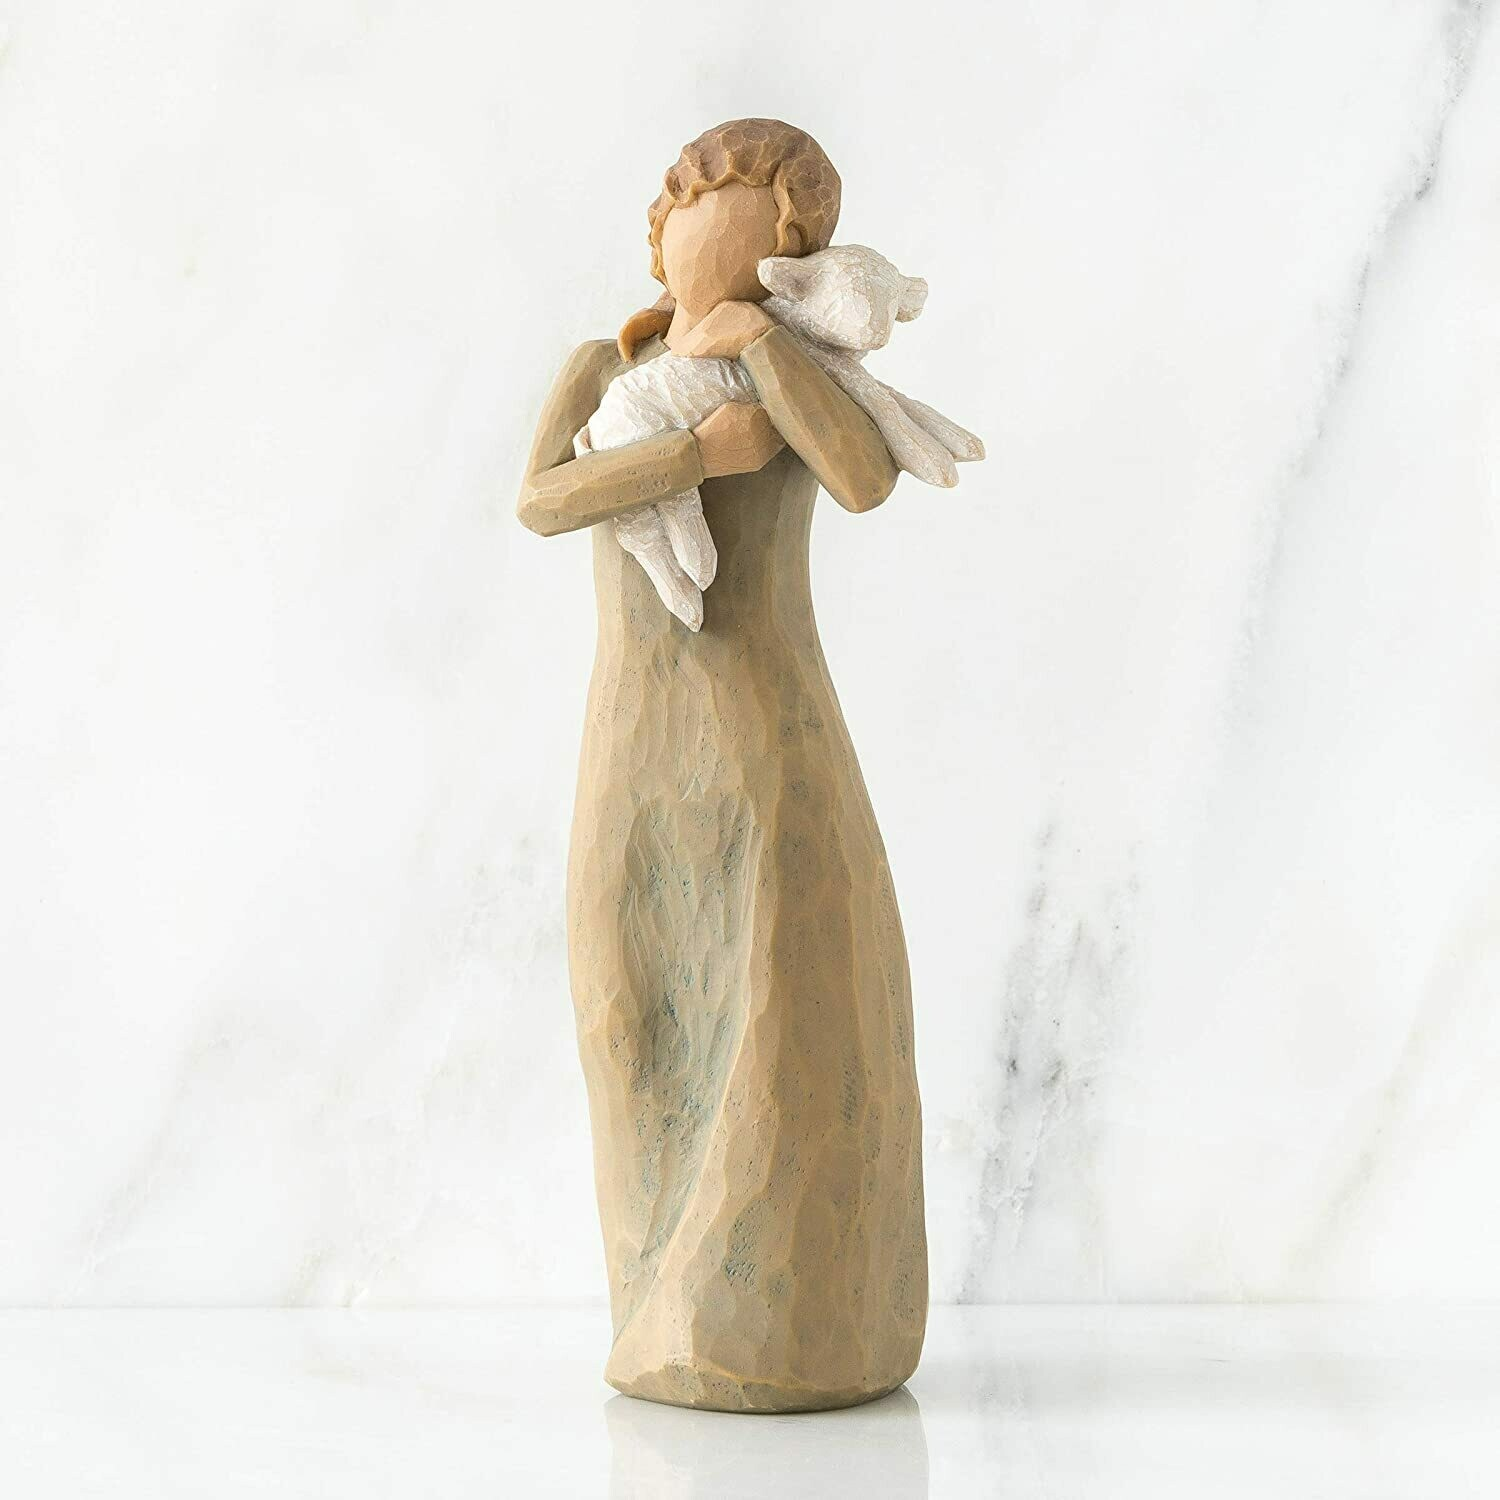 Willow Tree: Nativity Collection - Peace on Earth - Shepherdess with lamb in her arms.